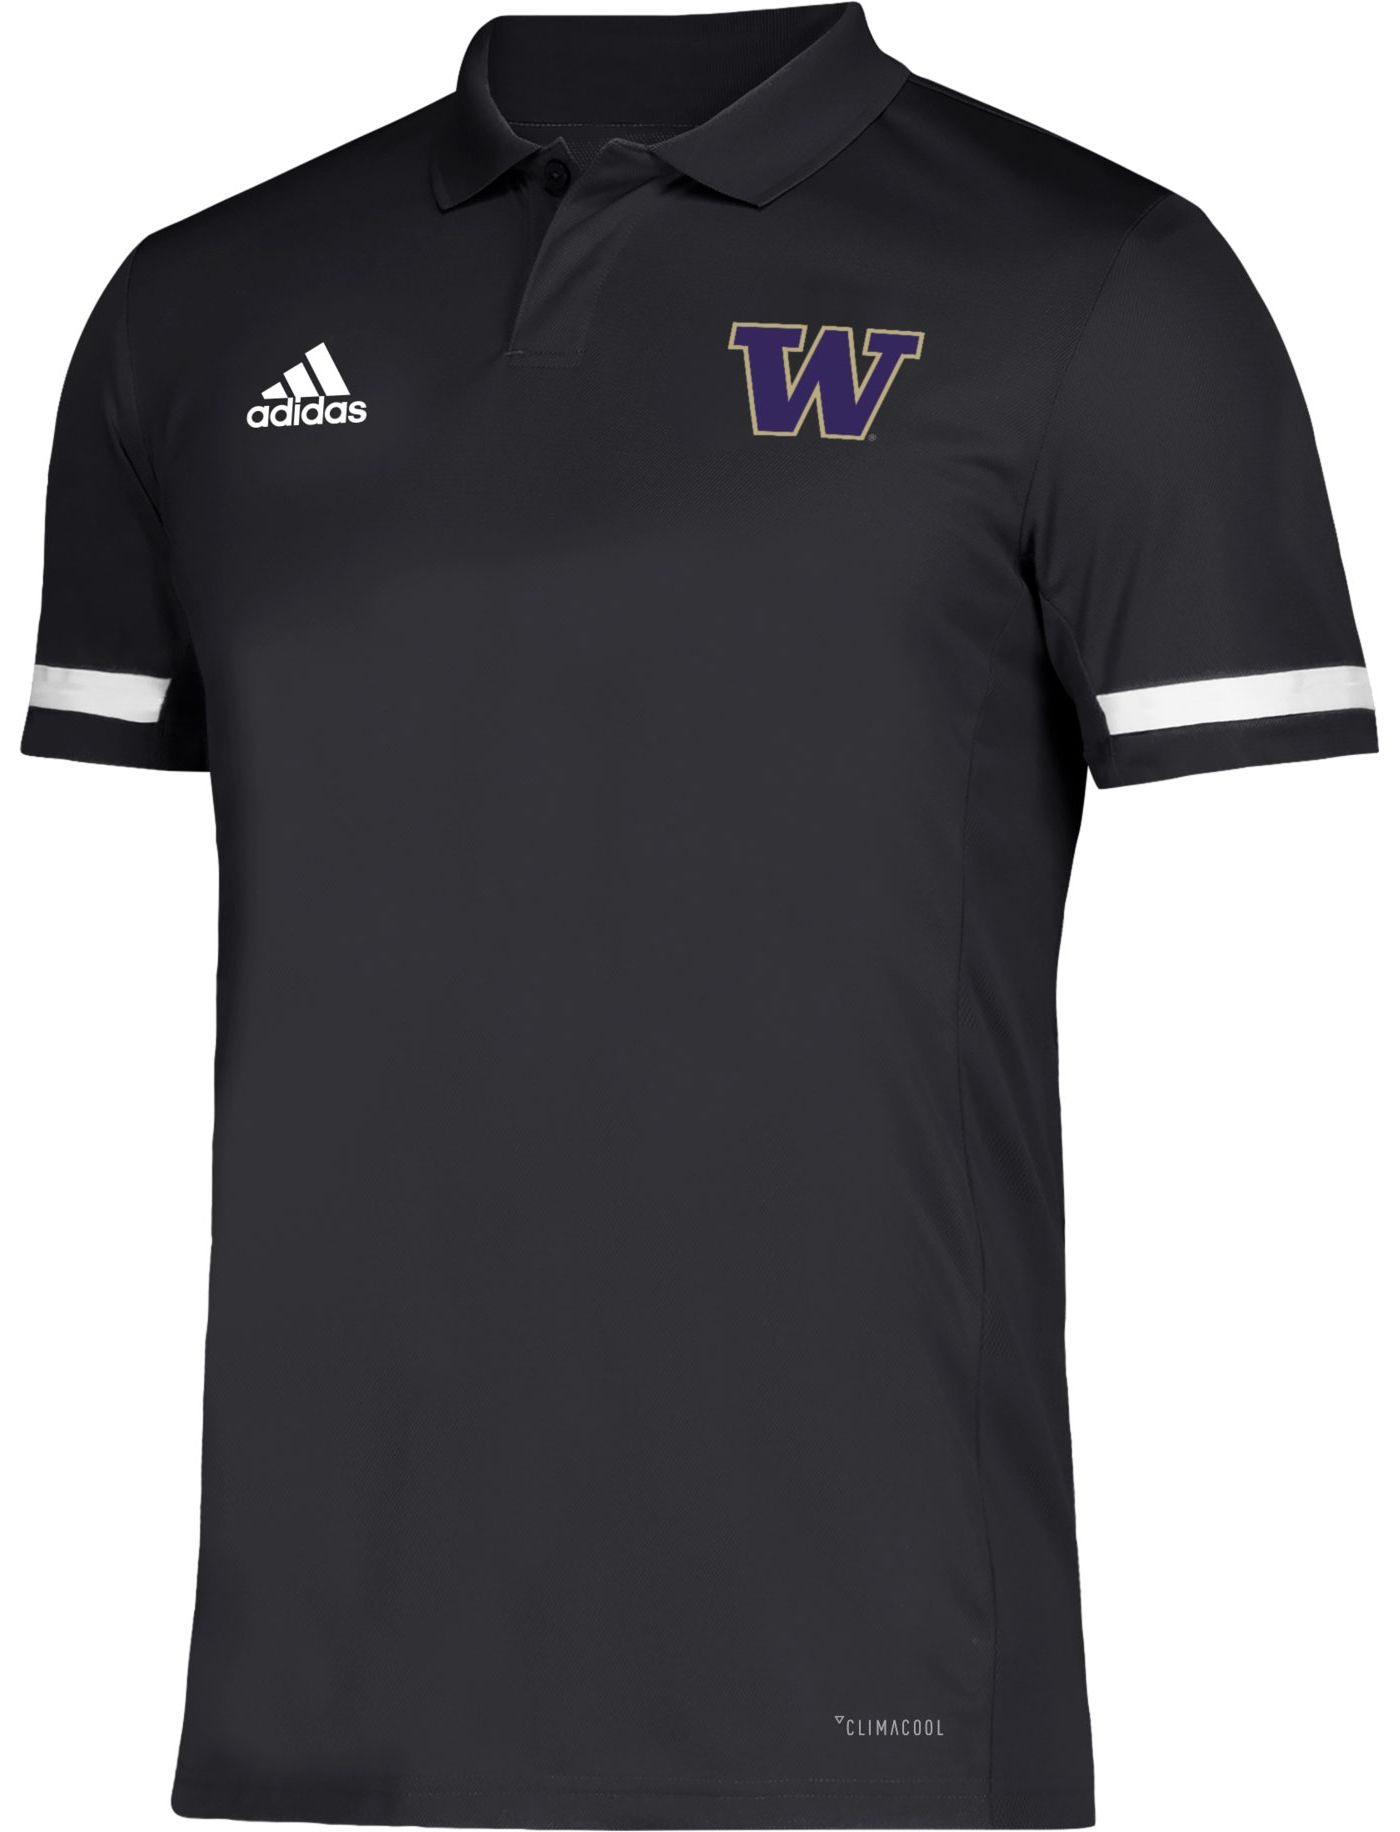 adidas Men's Washington Huskies Team 19 Sideline Football Black Polo